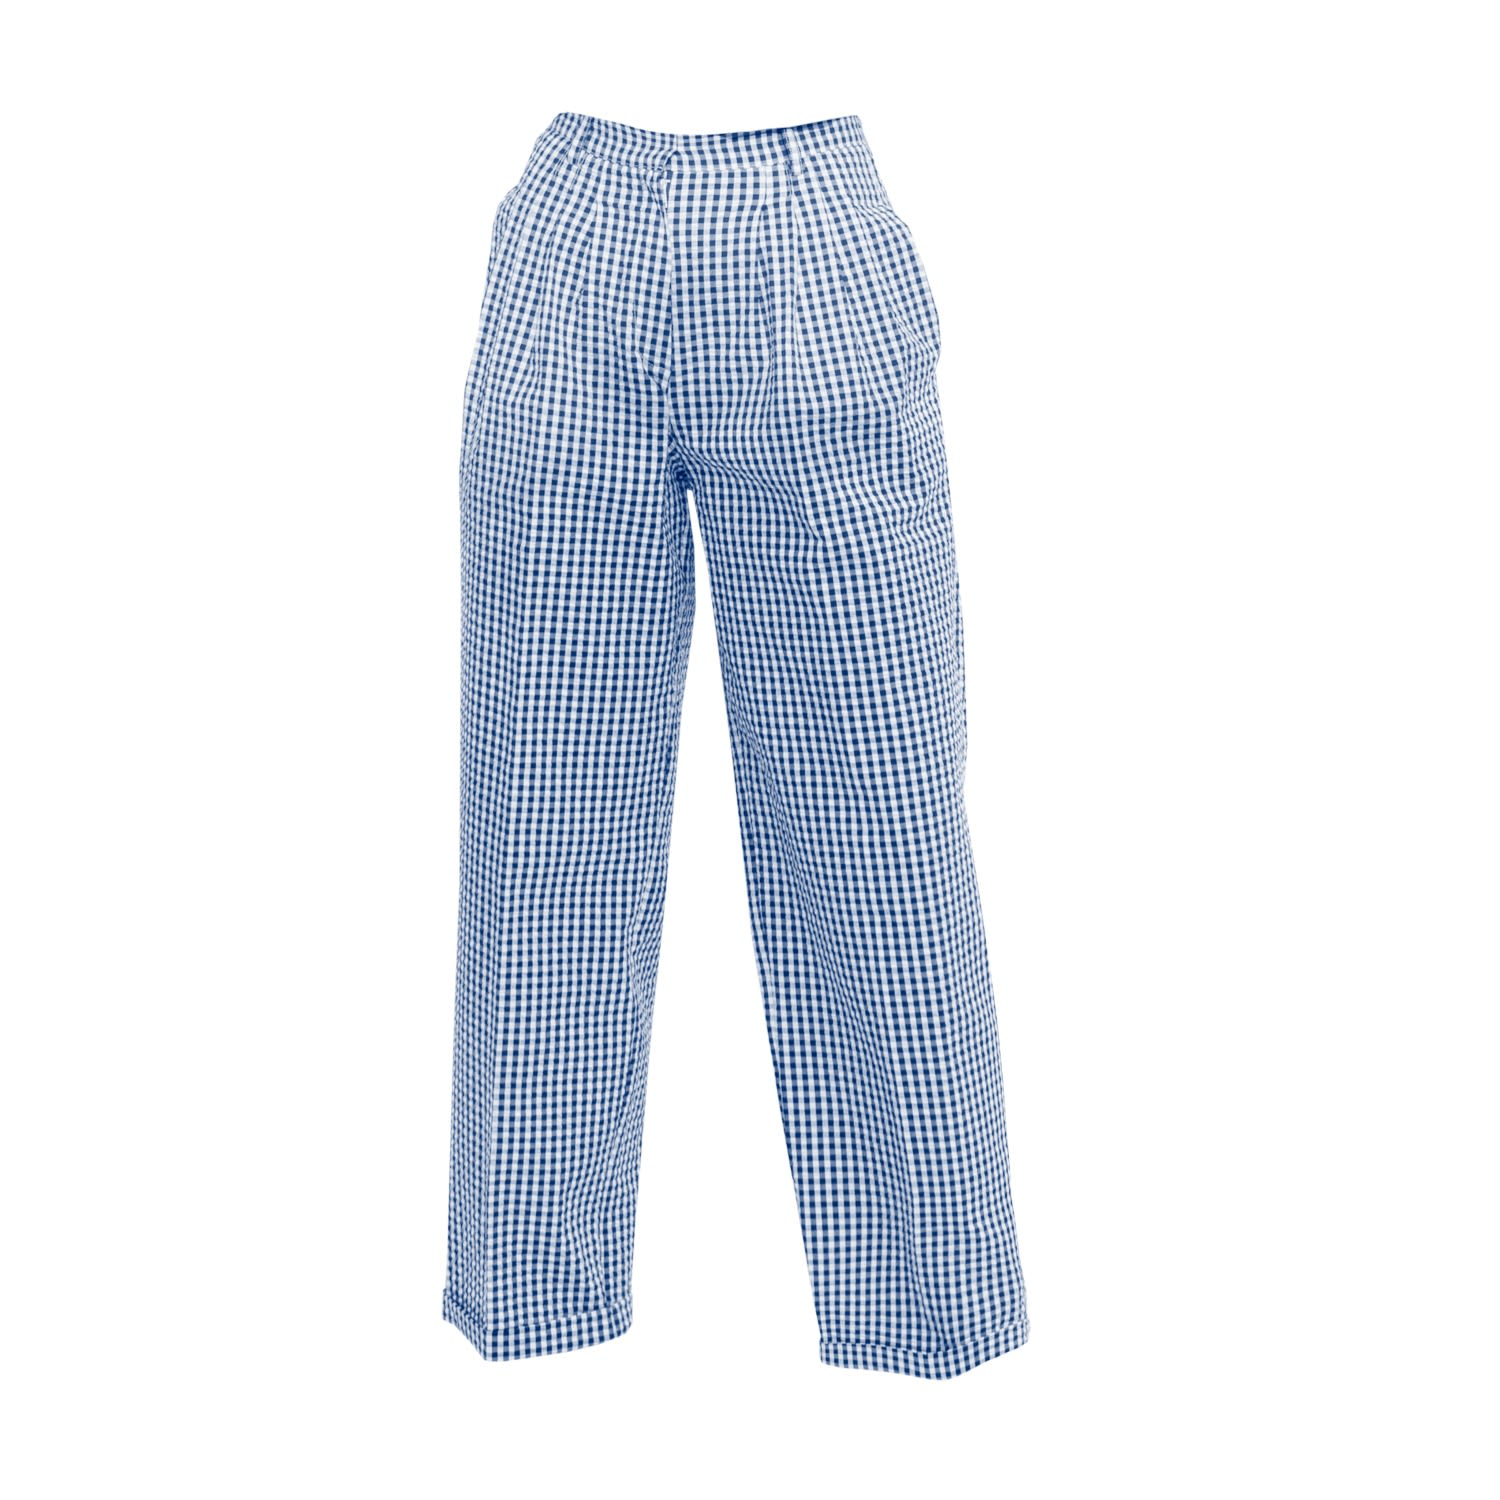 Tomcsanyi - Toalmas Blue & White Multi Pleat Trousers